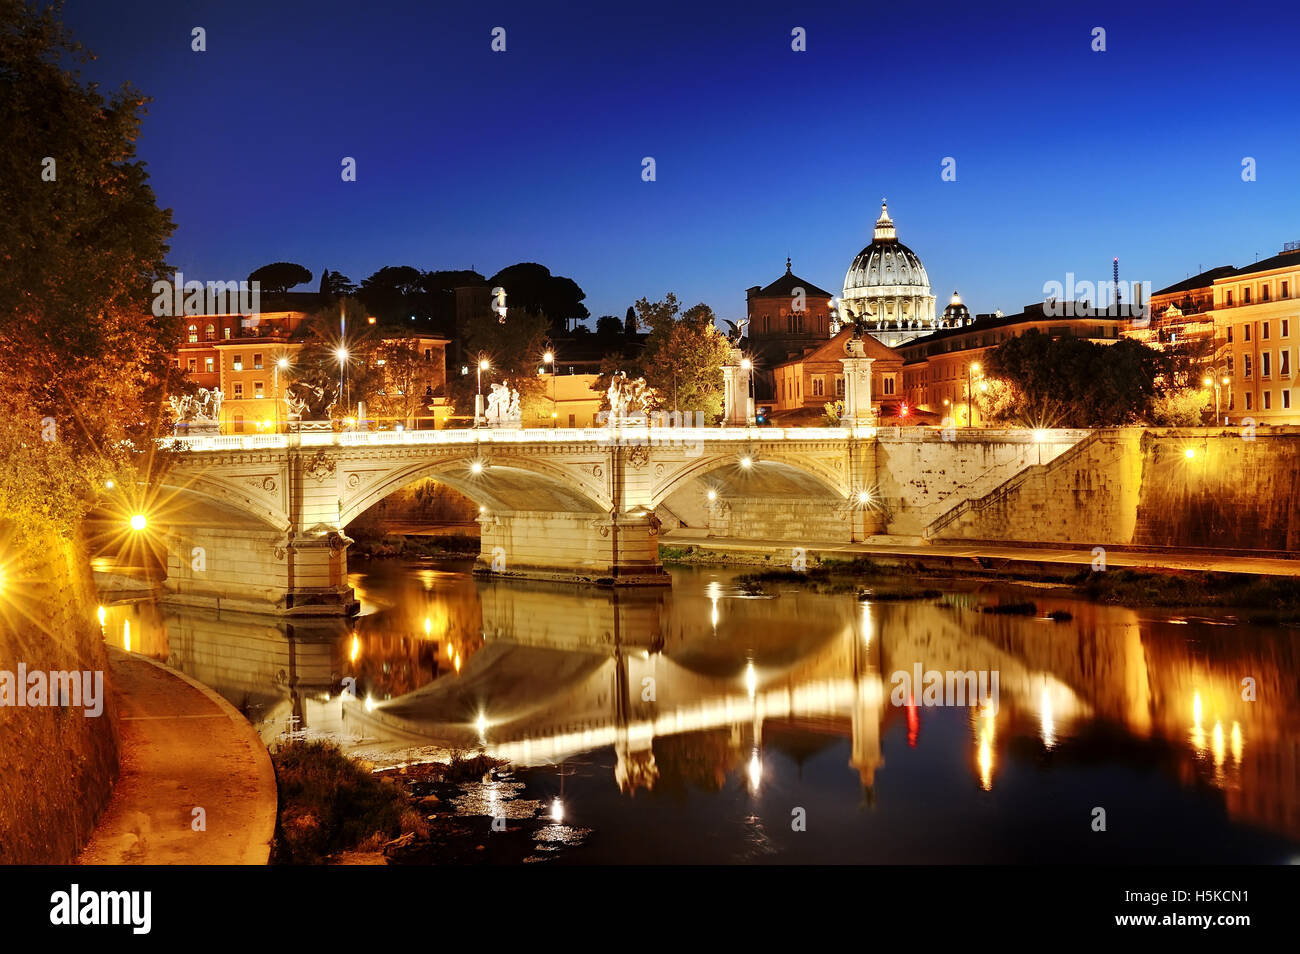 Rome, Italy - scenic view of a bridge over Tiber river and St. Peter's Basilica dome in Vatican at night - Stock Image